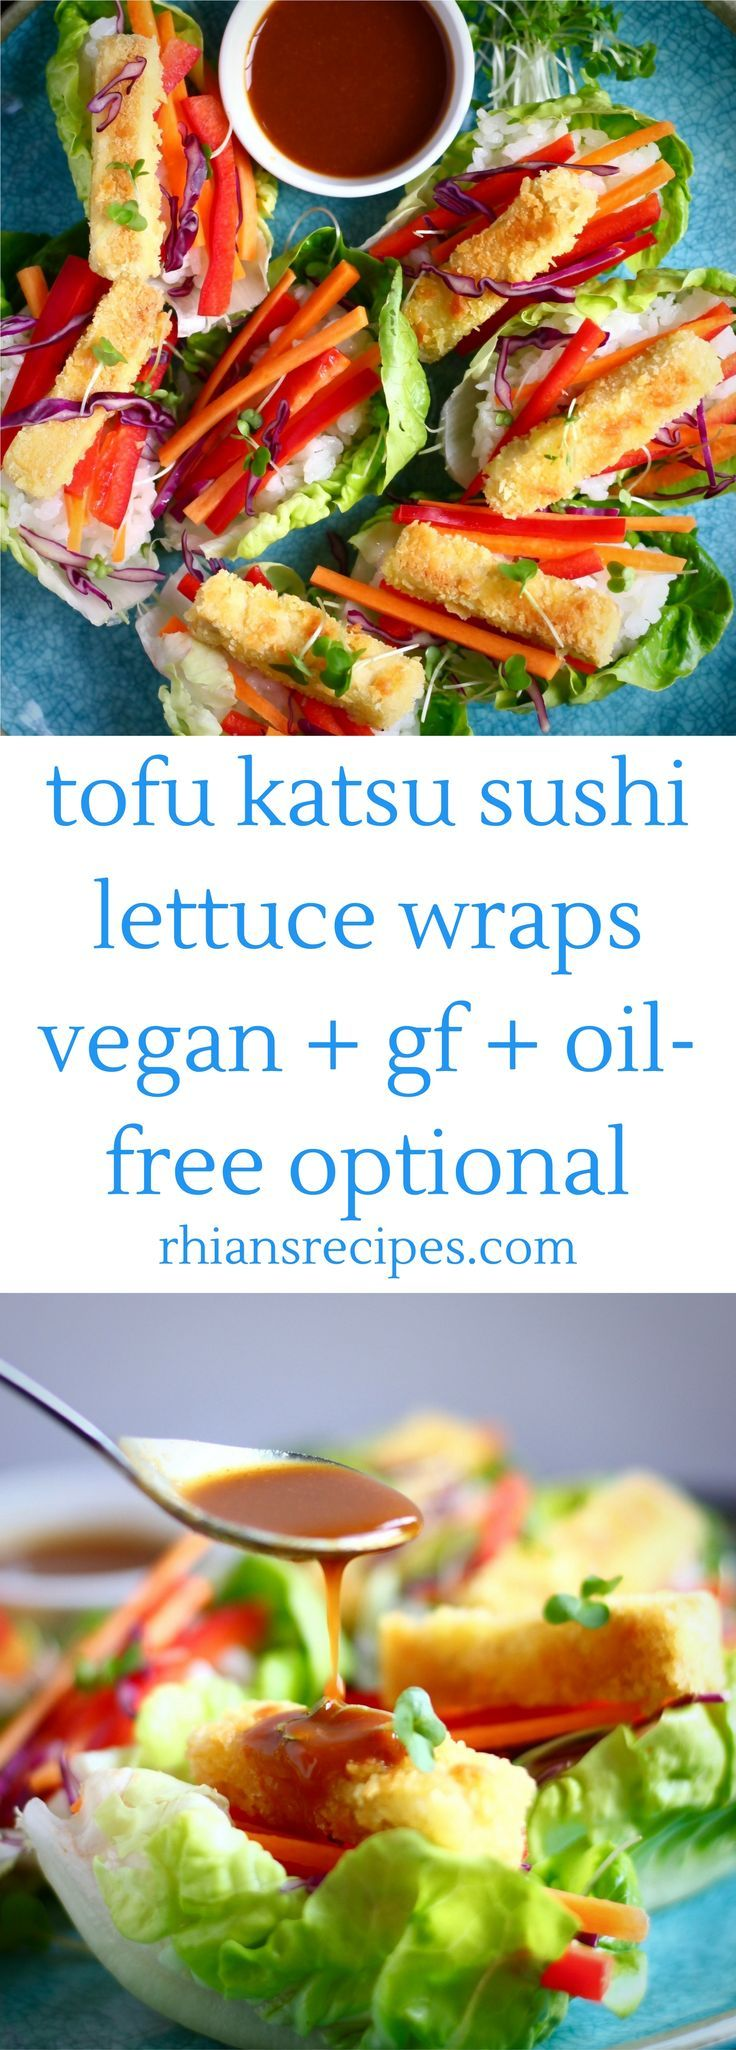 Tofu Katsu Sushi Lettuce Wraps (Vegan + GF)  These Tofu Katsu Sushi Lettuce Wraps are satisfying, flavourful and packed with plant-based goodness. Vegan, gluten-free and oil-free optional. With a delicious miso sauce recipe.